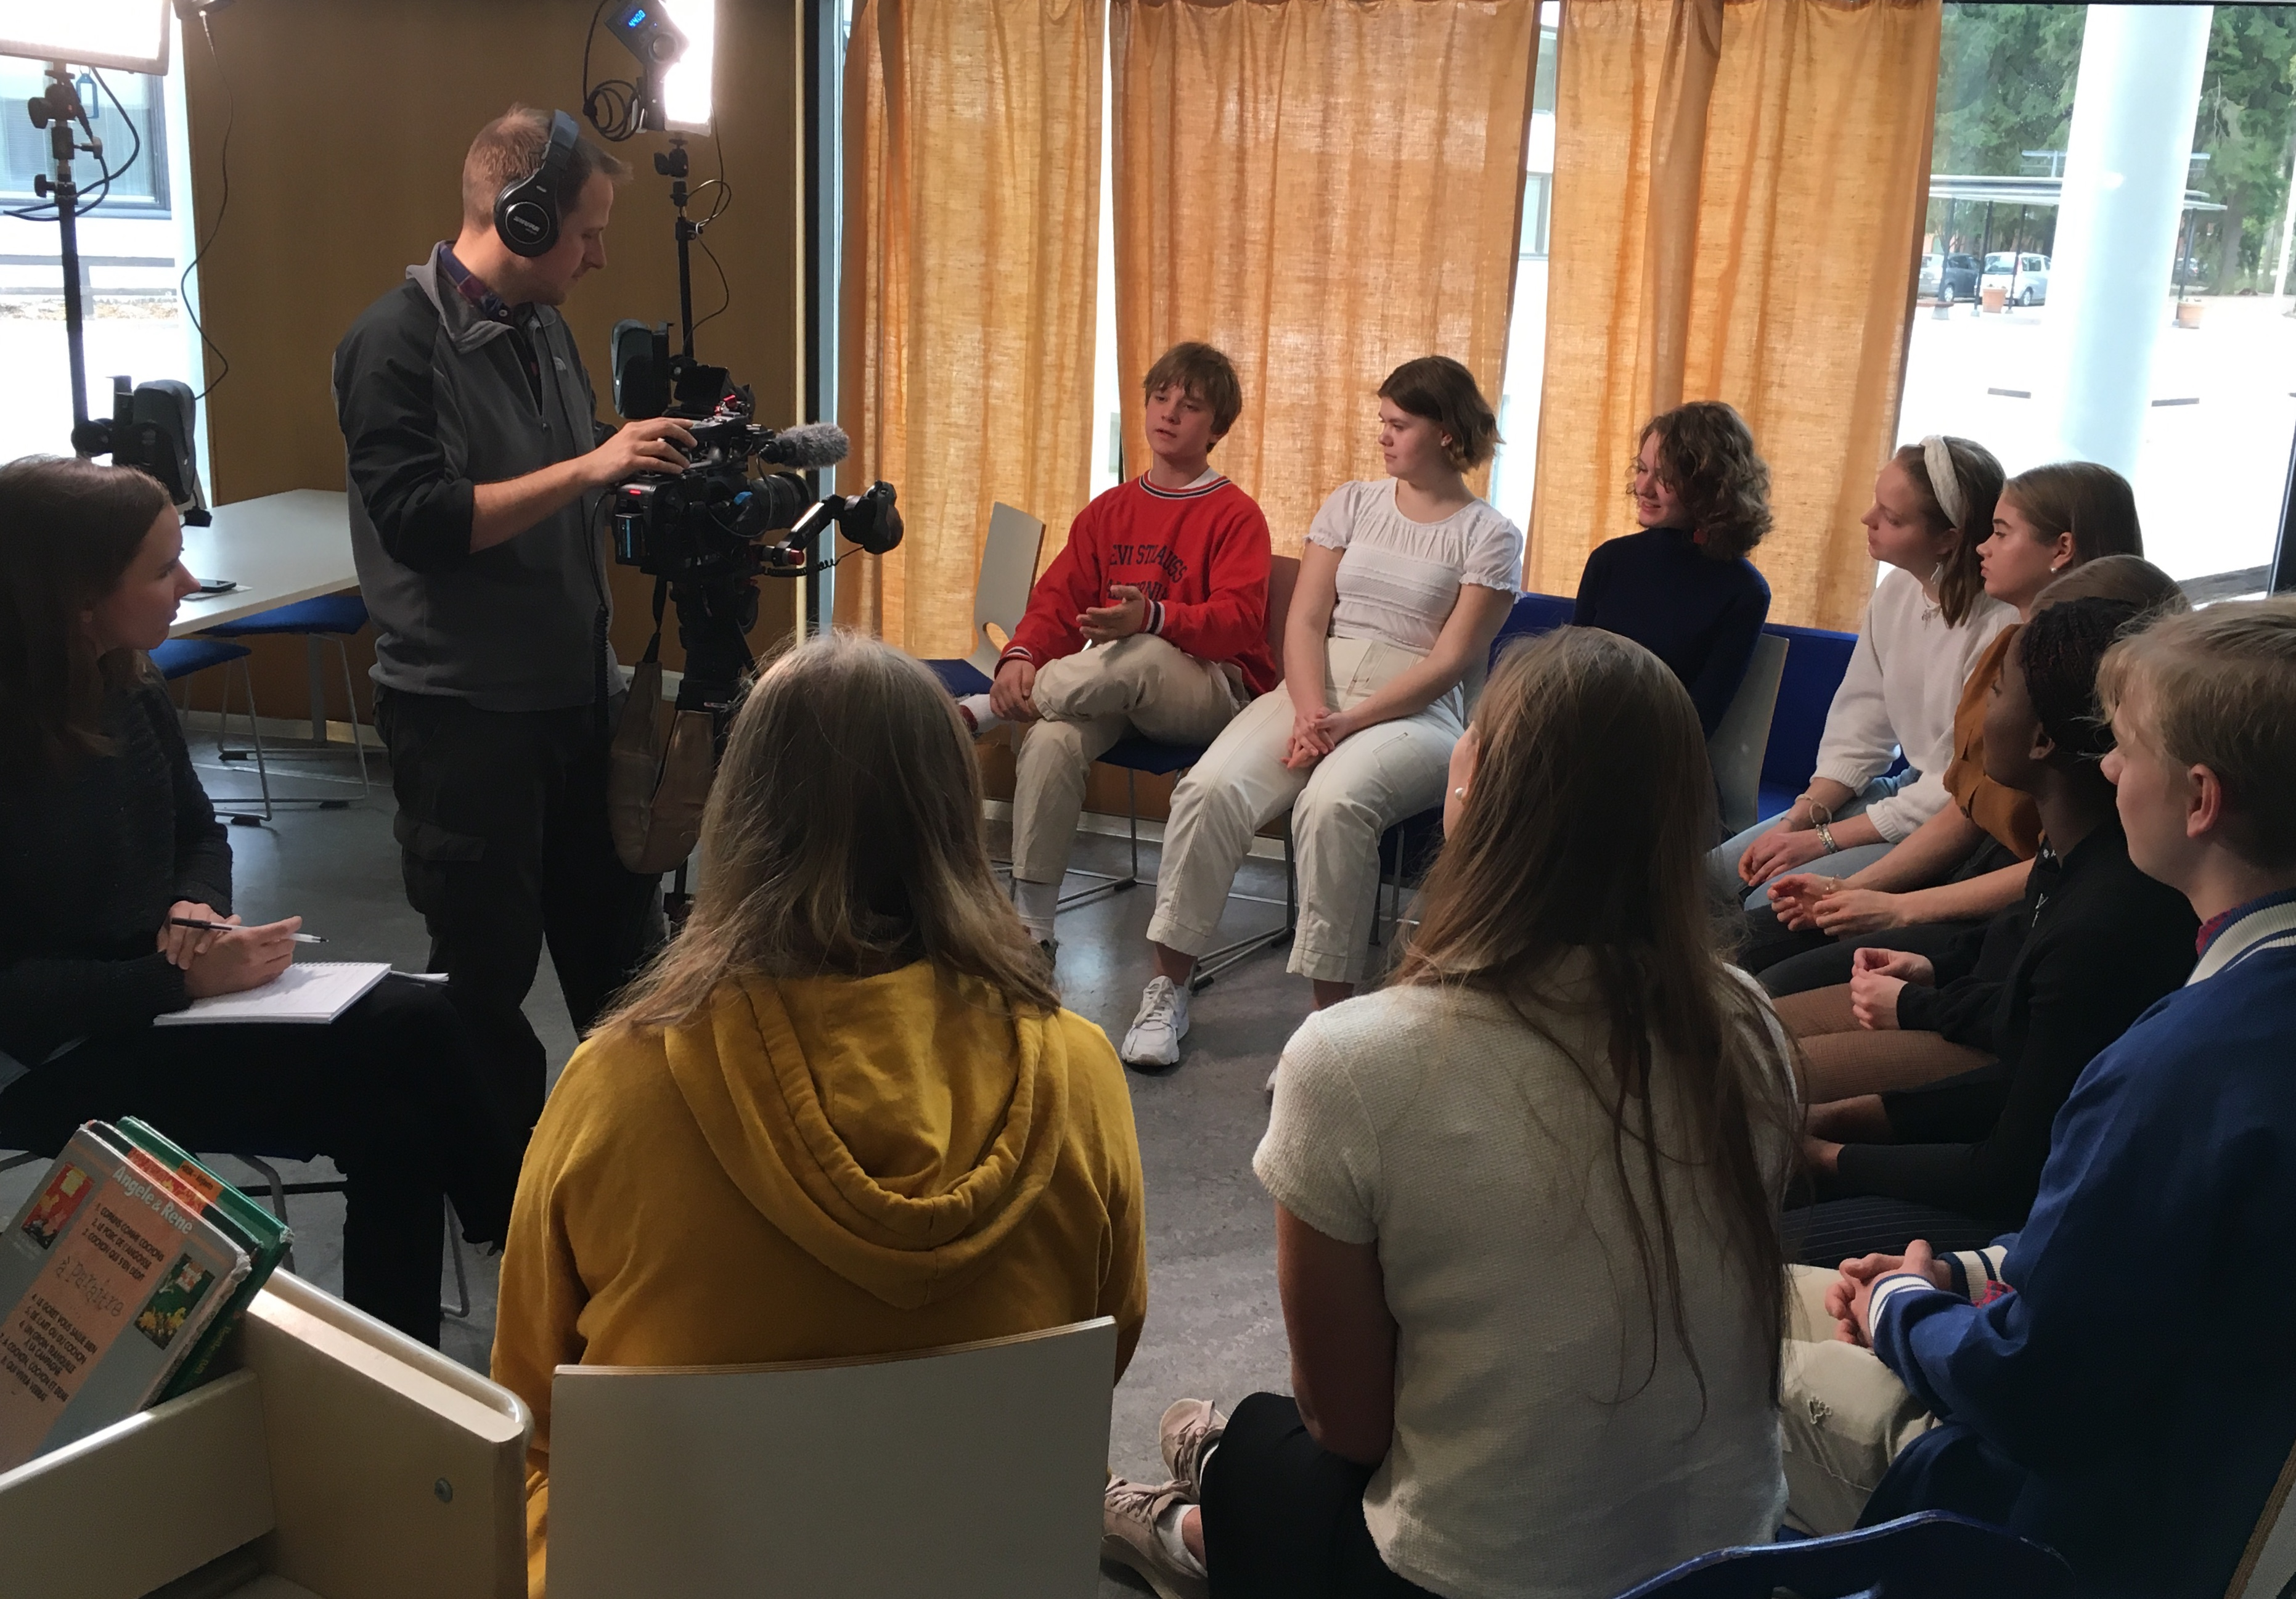 CNN reporters visited the French Finnish school of Helsinki